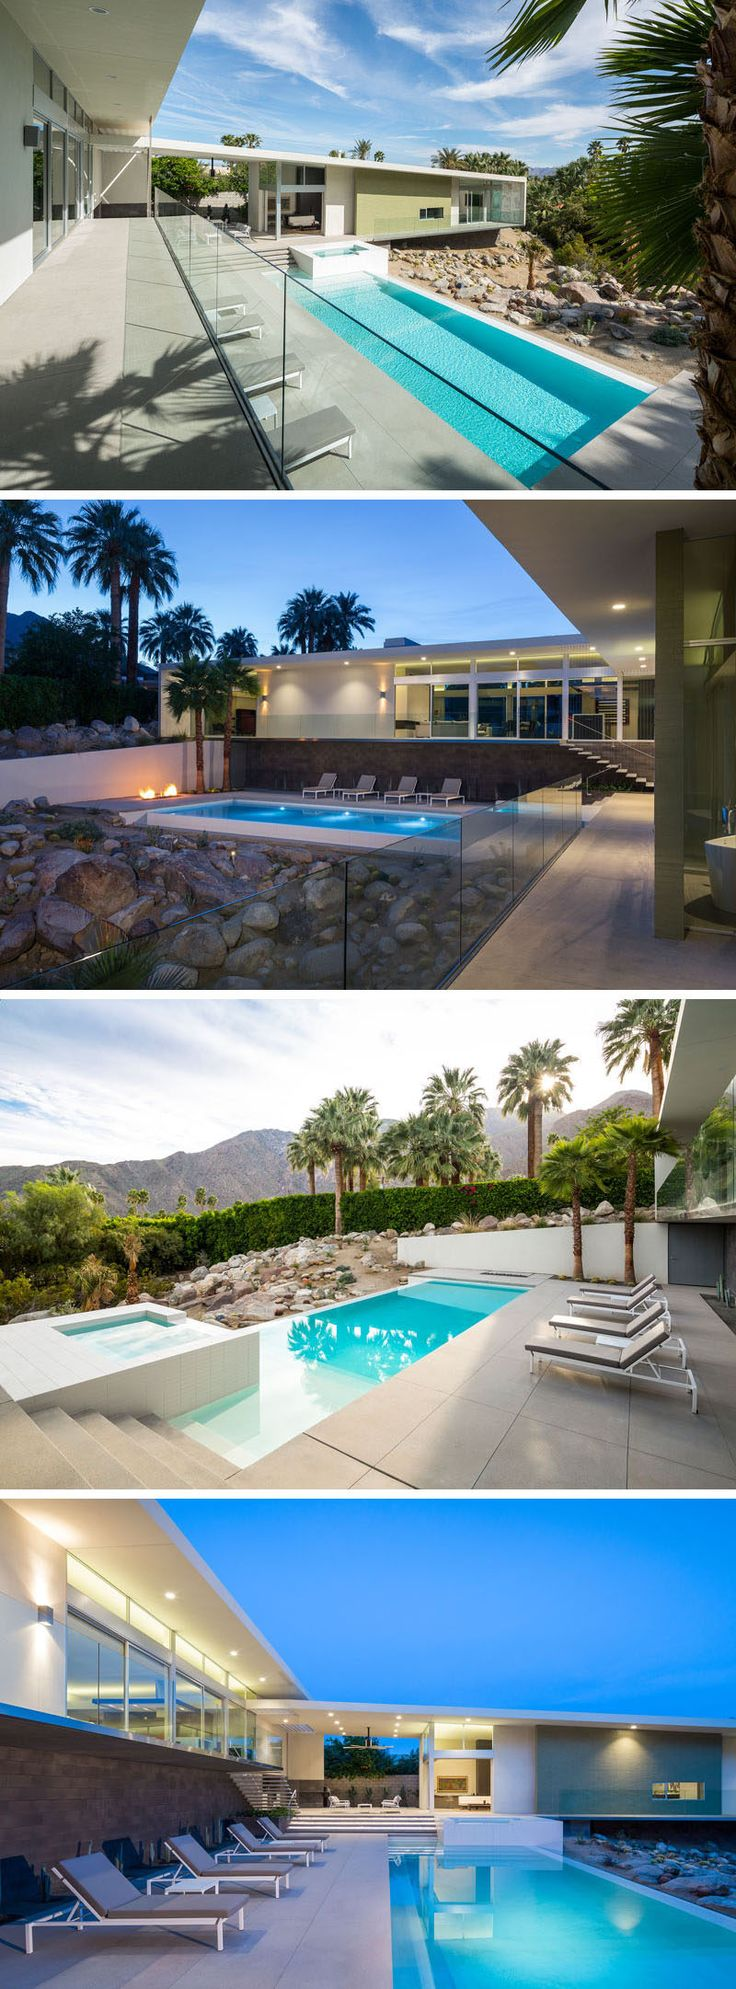 This pool and spa are surrounded by a concrete deck and rock garden.